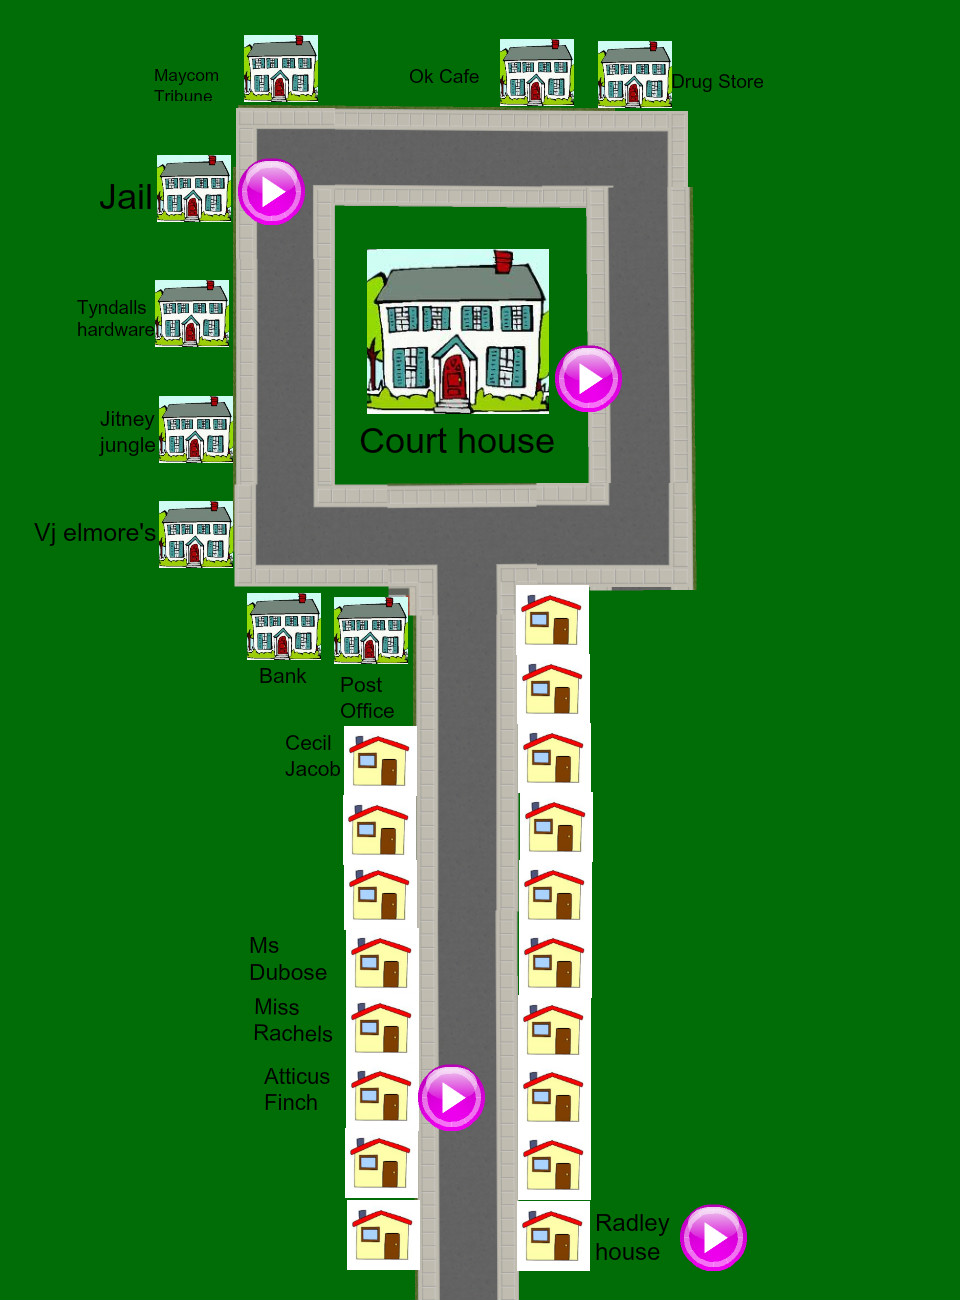 maycomb map bec zanon: text, images, music, video | Glogster EDU ...